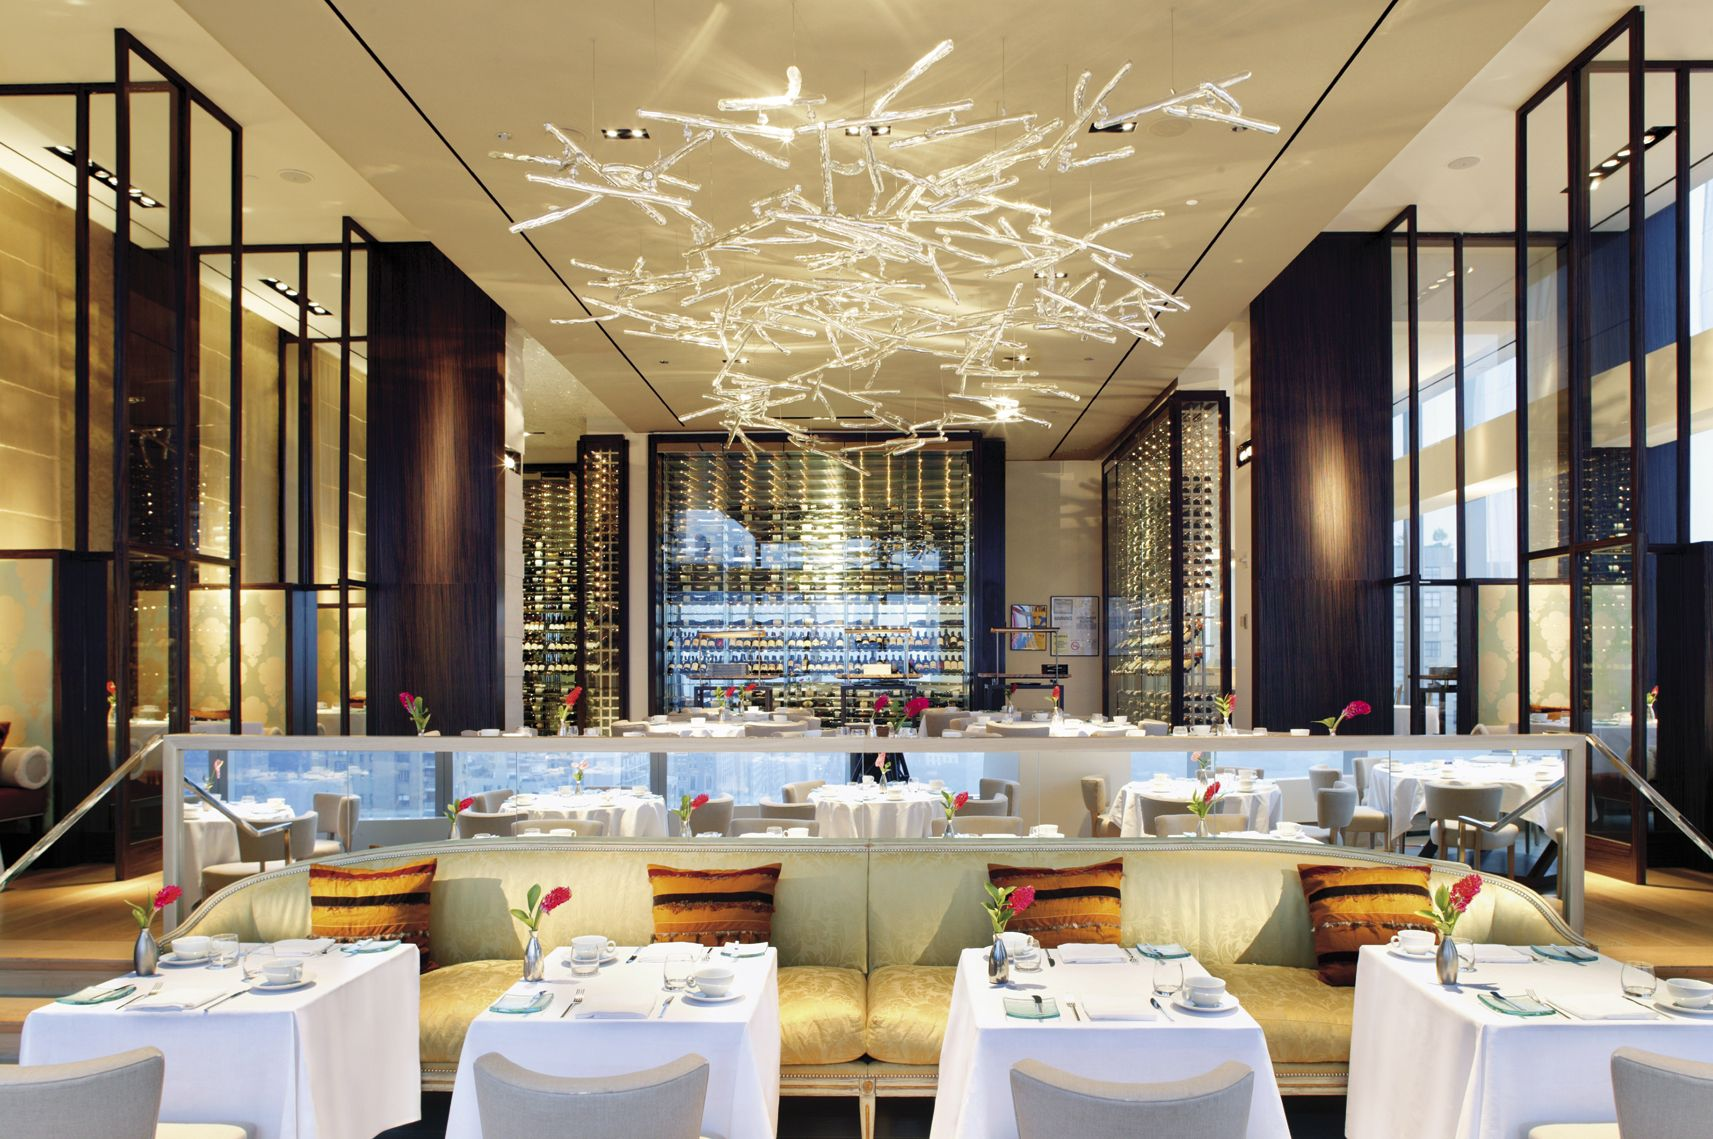 Mandarin Oriental New York The Asian Fusion Restaurant Asiate Is A Top City Table